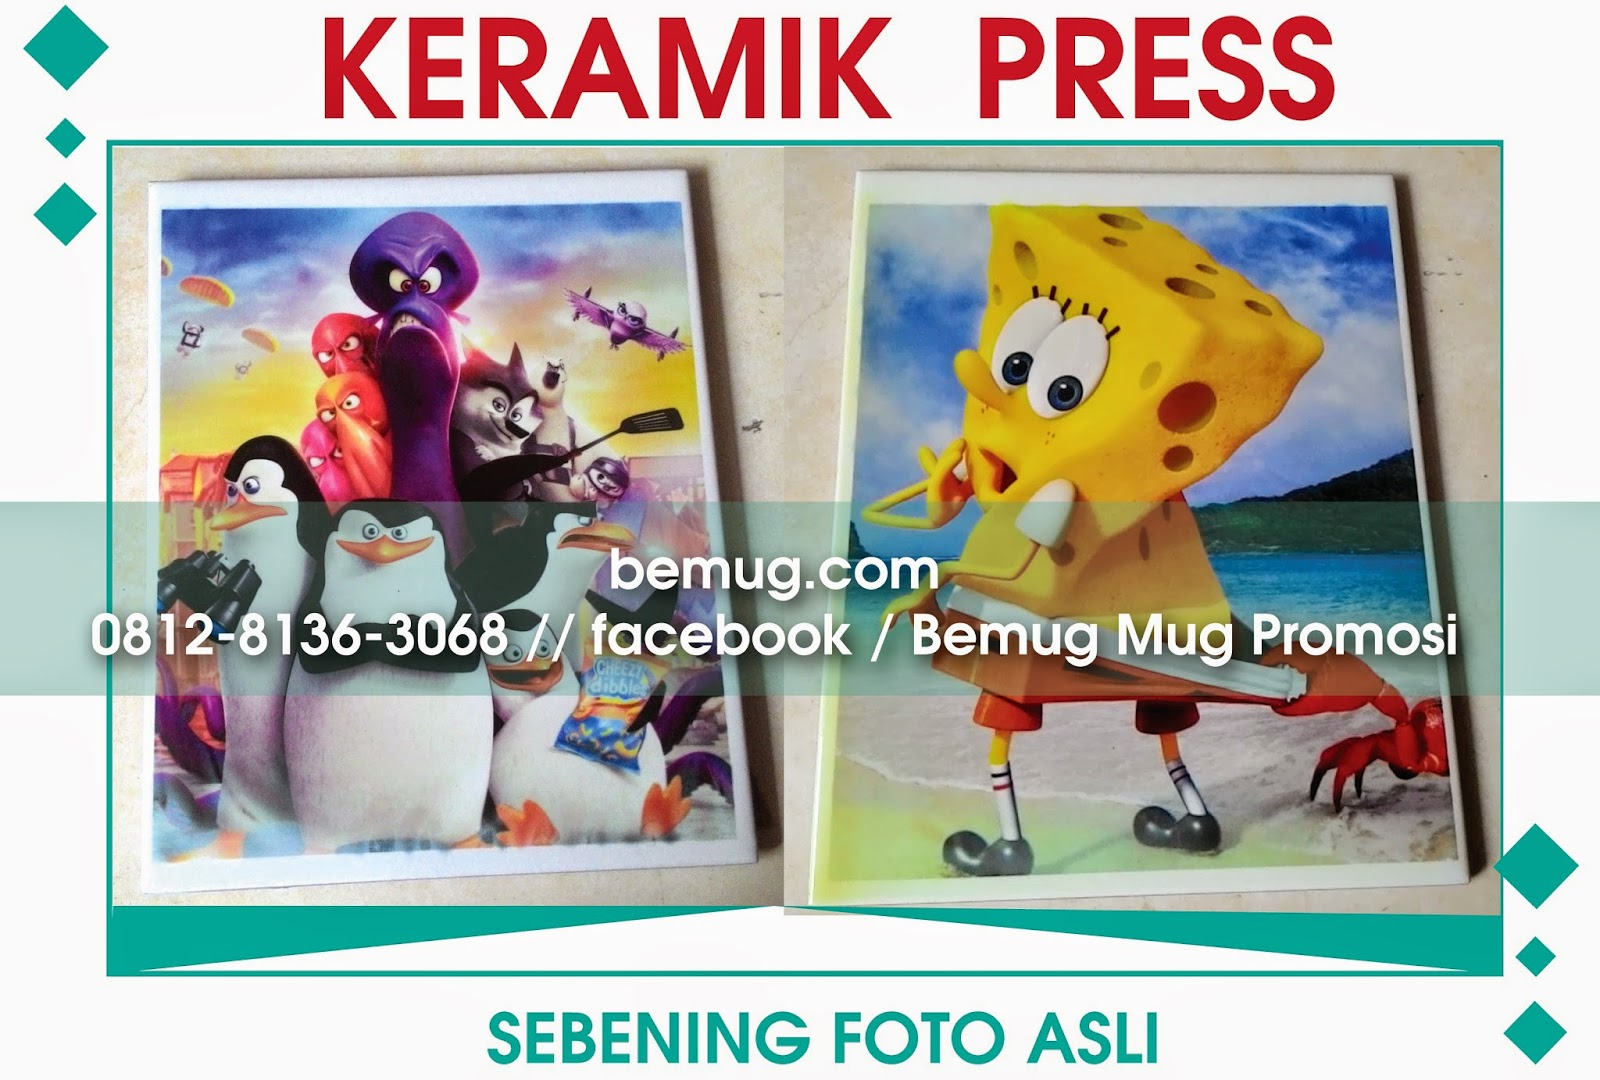 Keramik Press